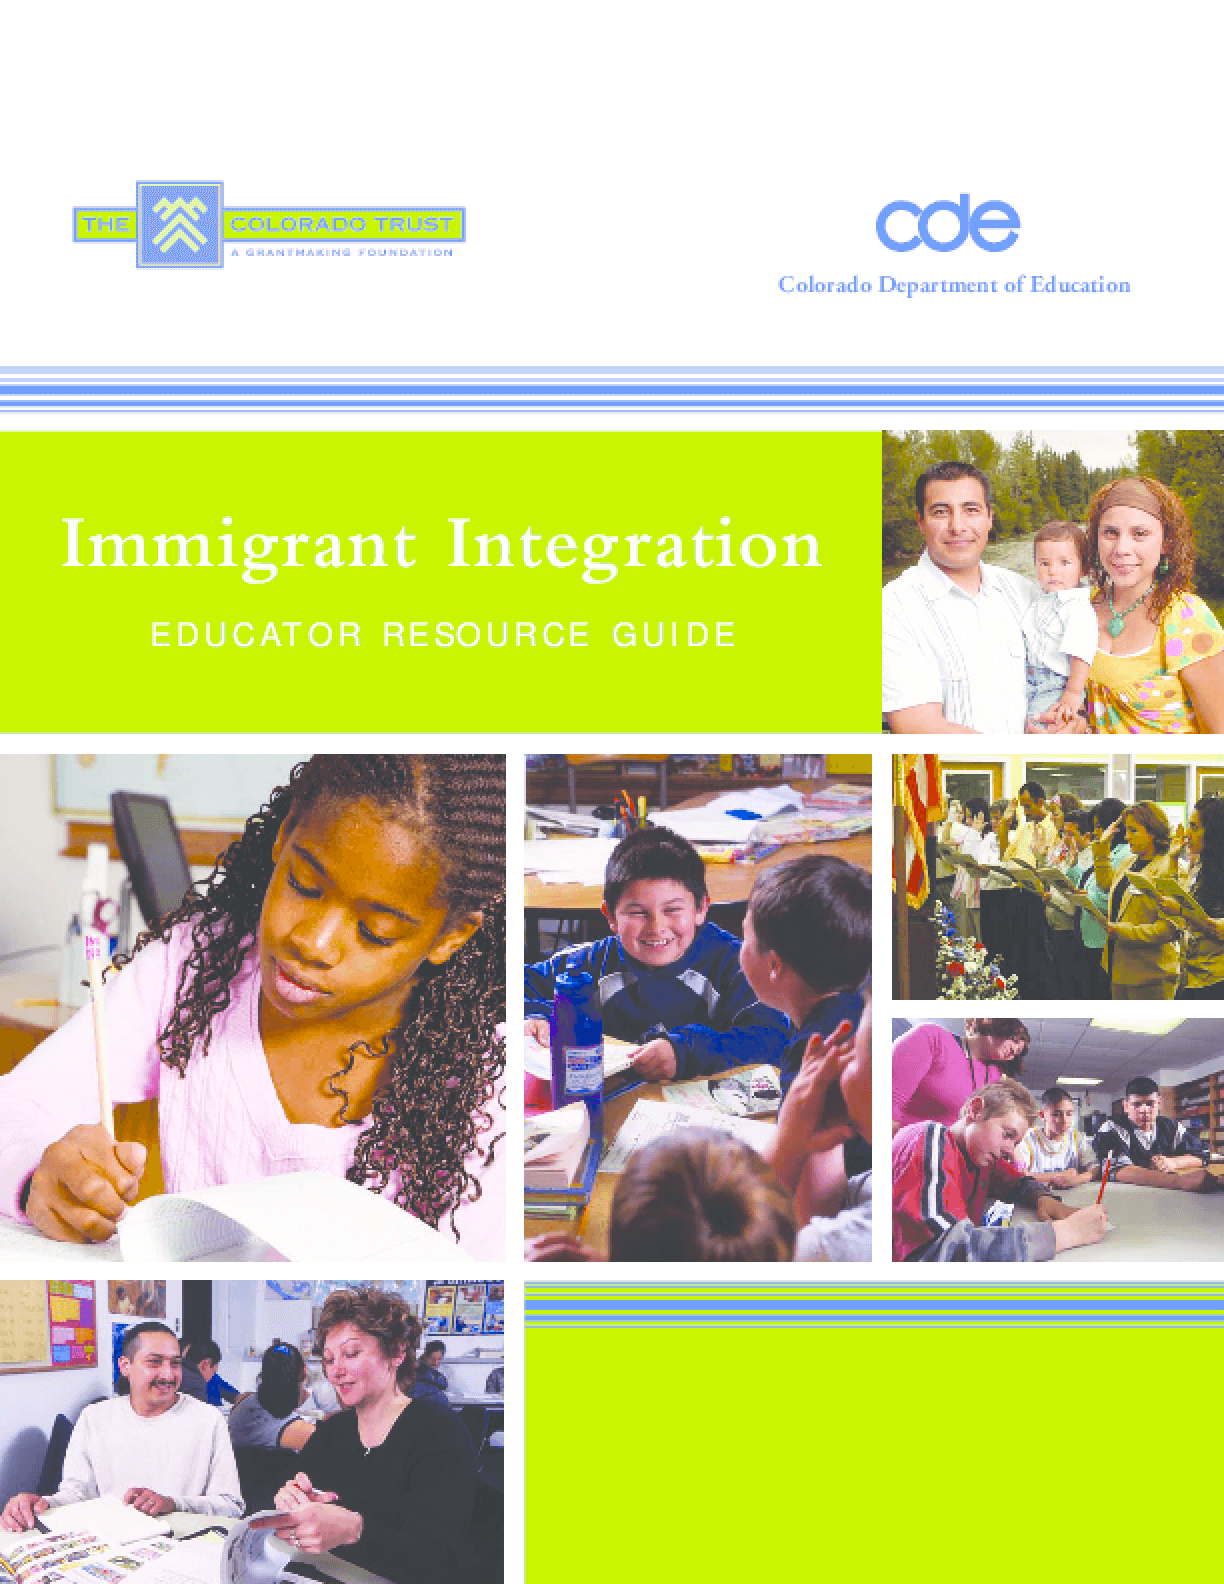 Immigrant Integration: Educator Resource Guide